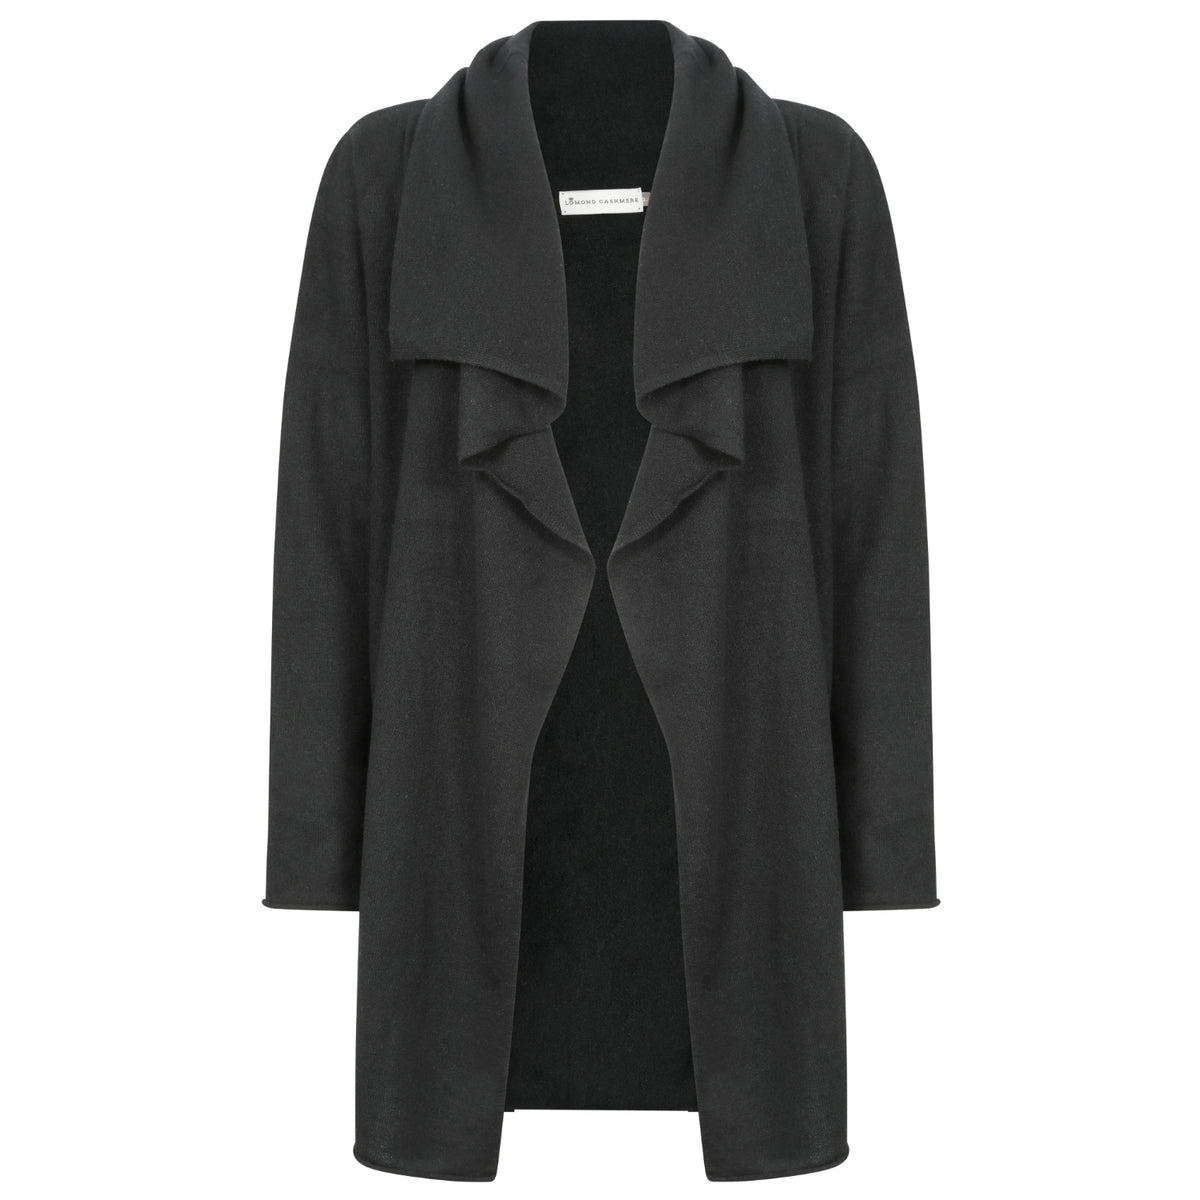 Ladies Open Long Waterfall Cashmere Cardigan | Black | Shop at The Cashmere Choice | London